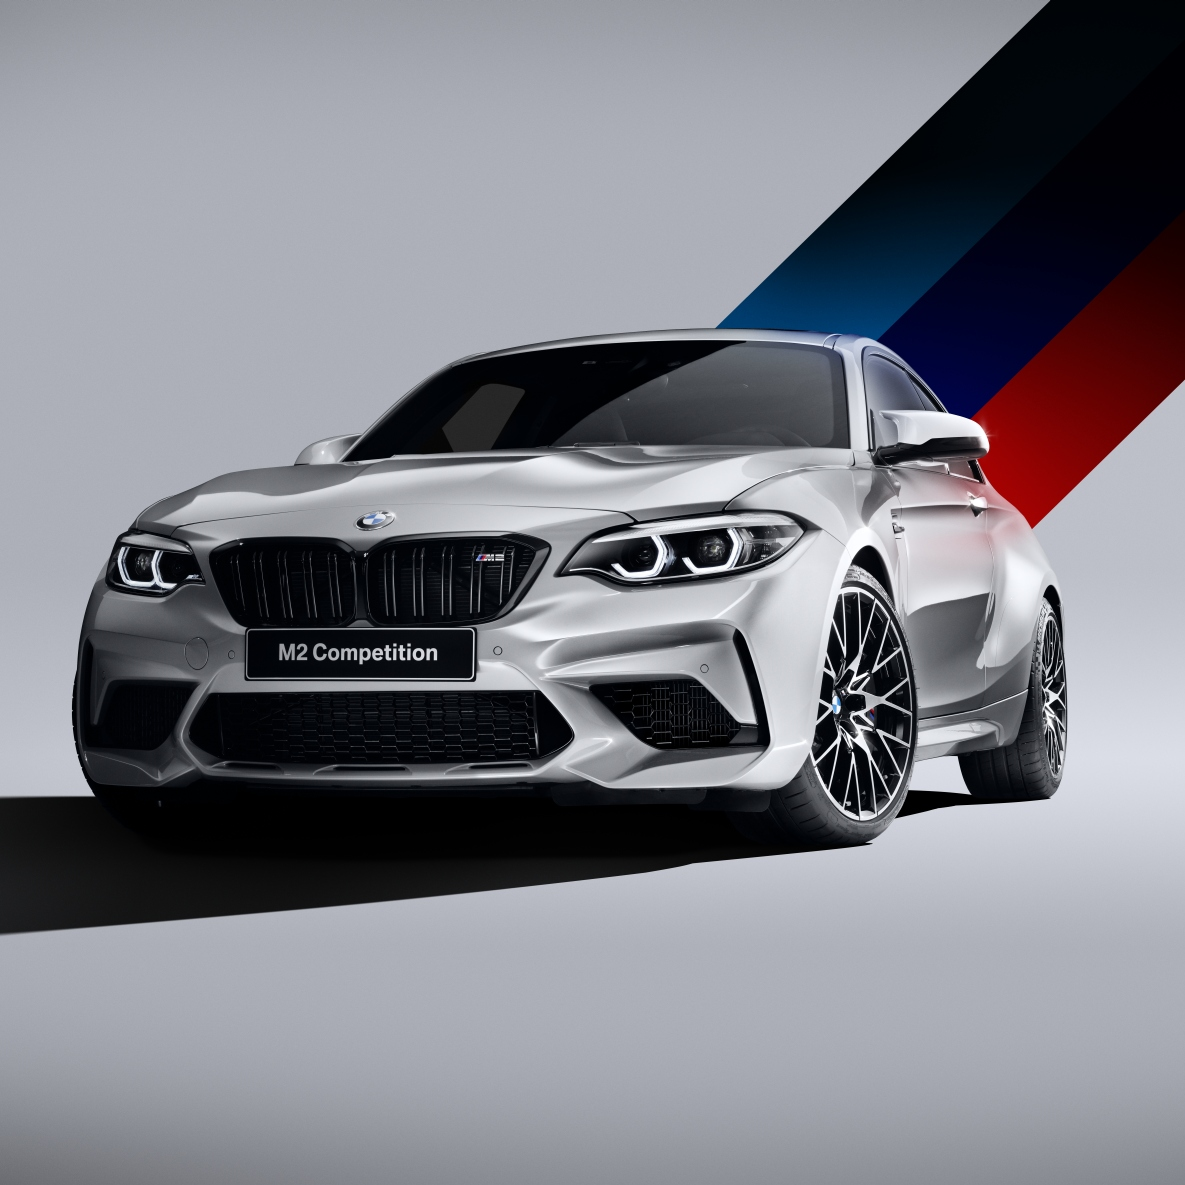 Bmw M Automobiles As Design Objects